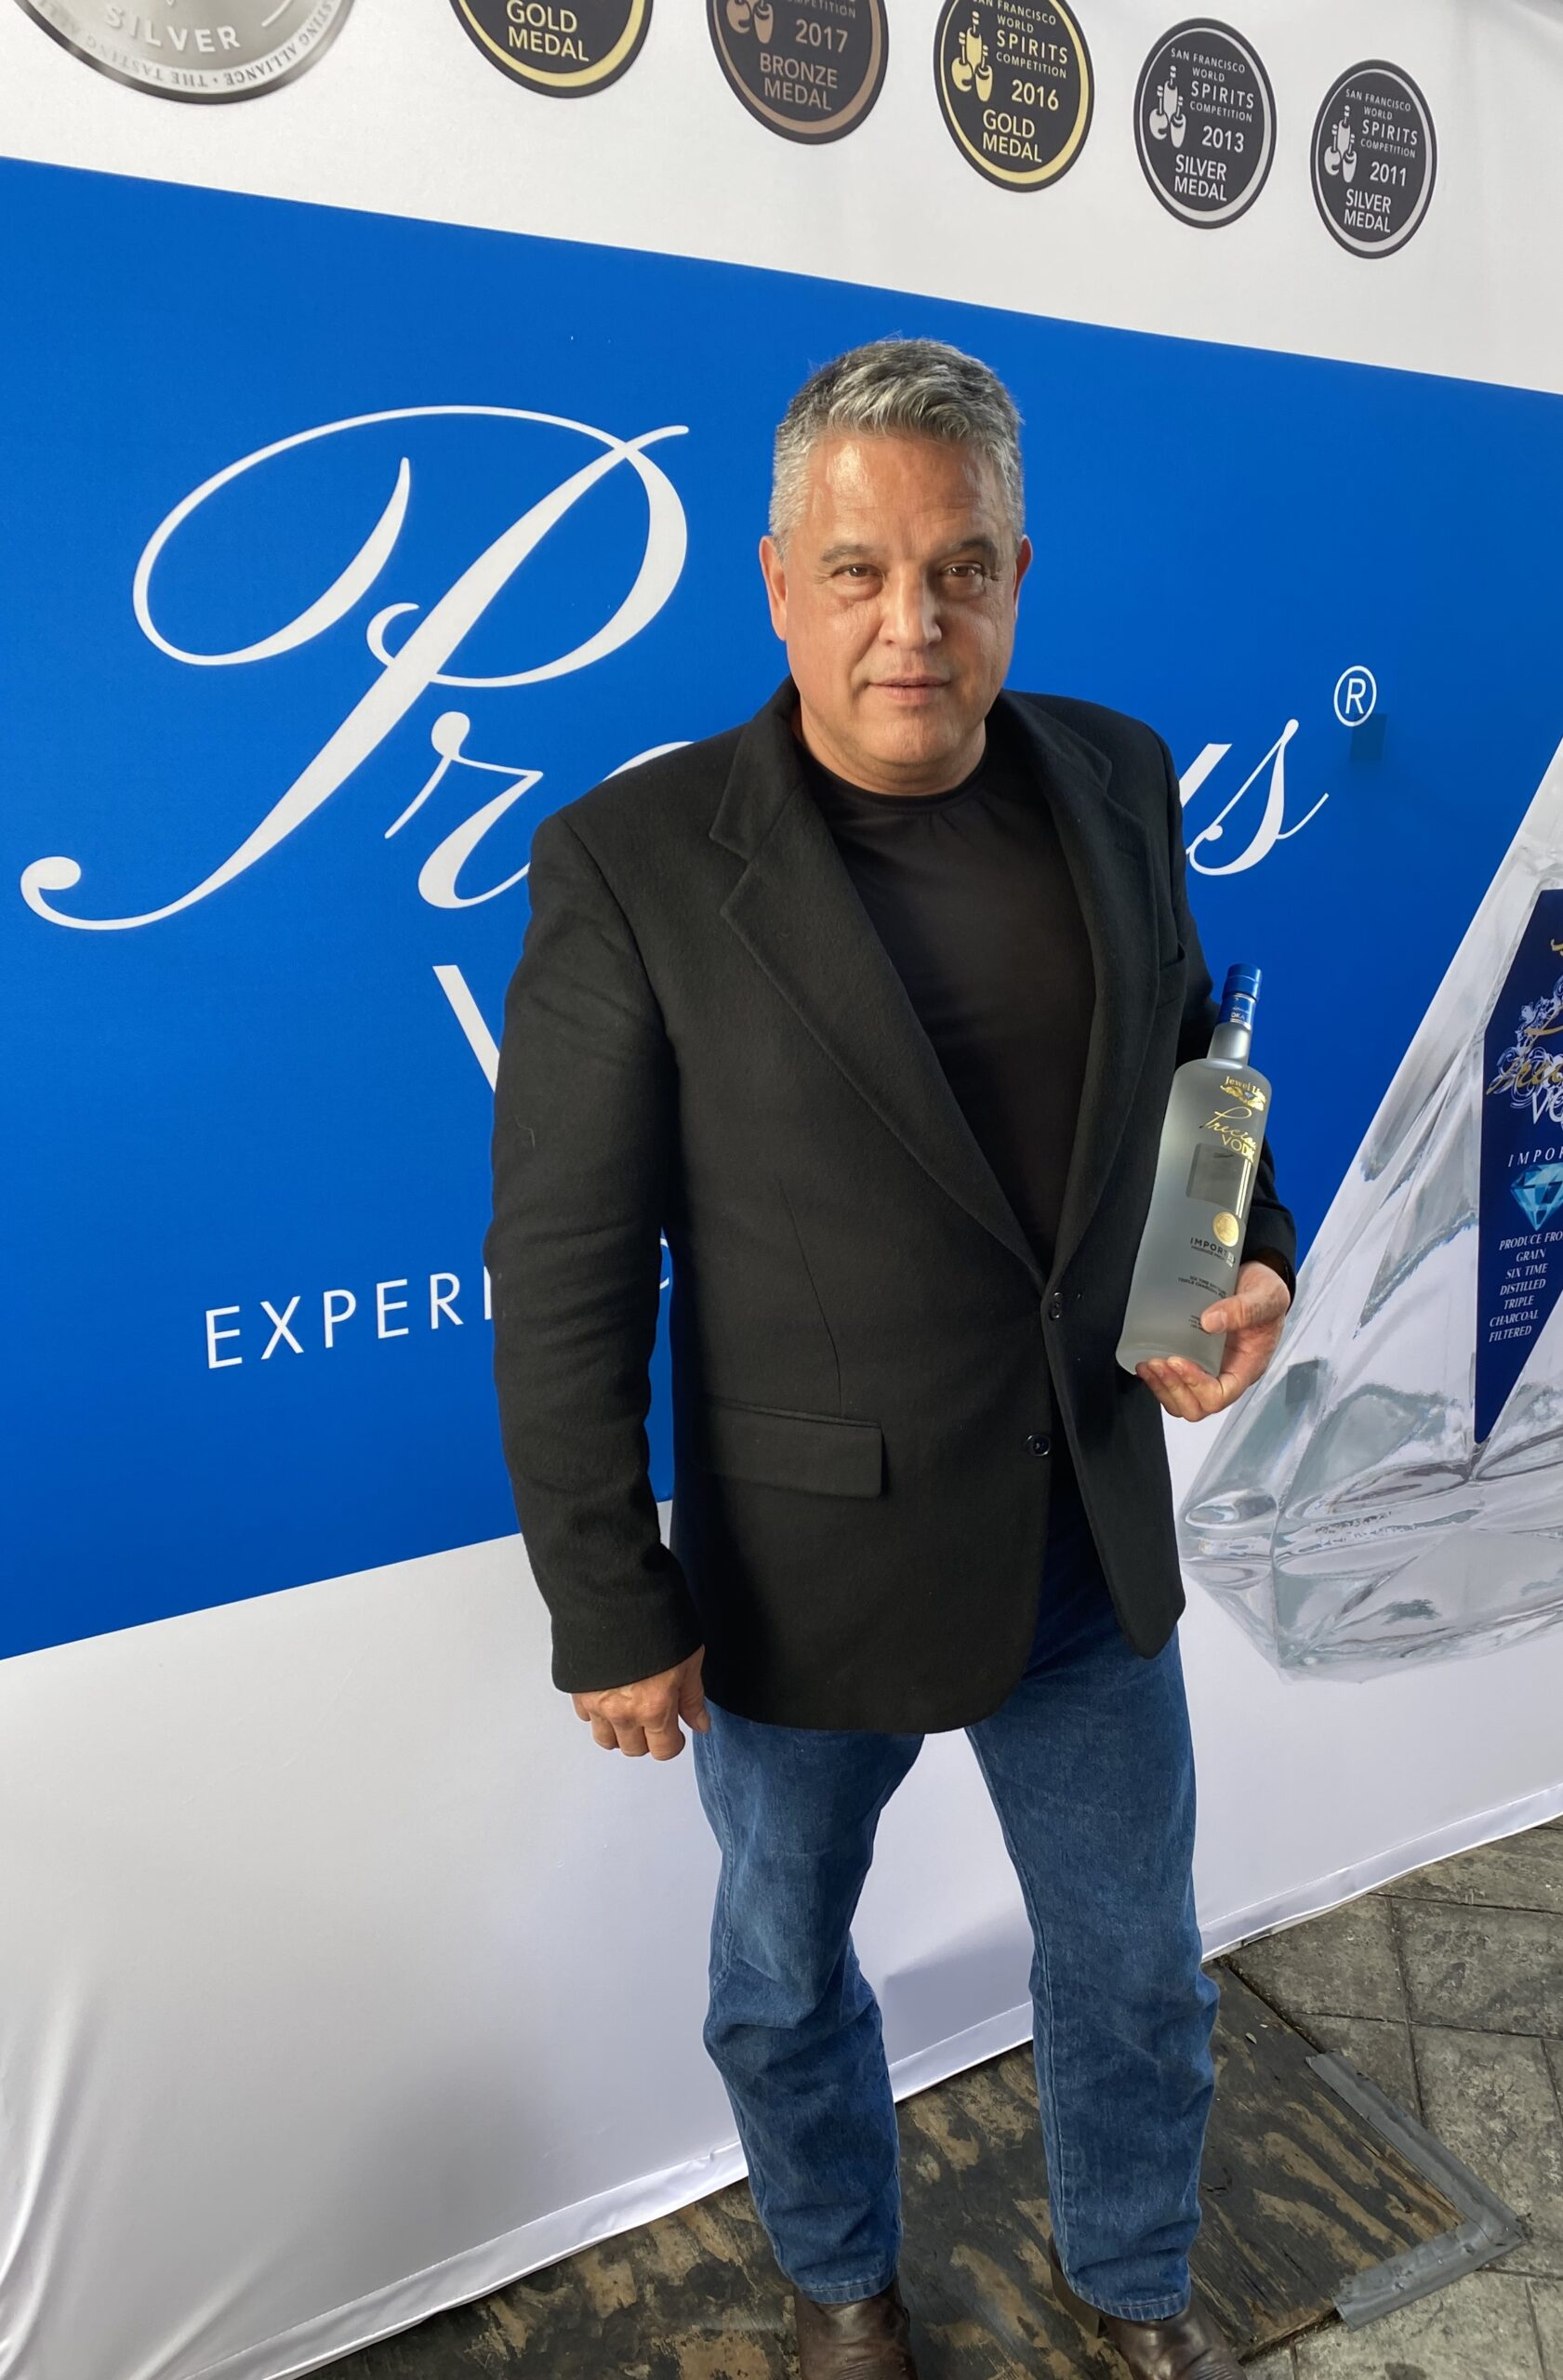 vodka oscar gift